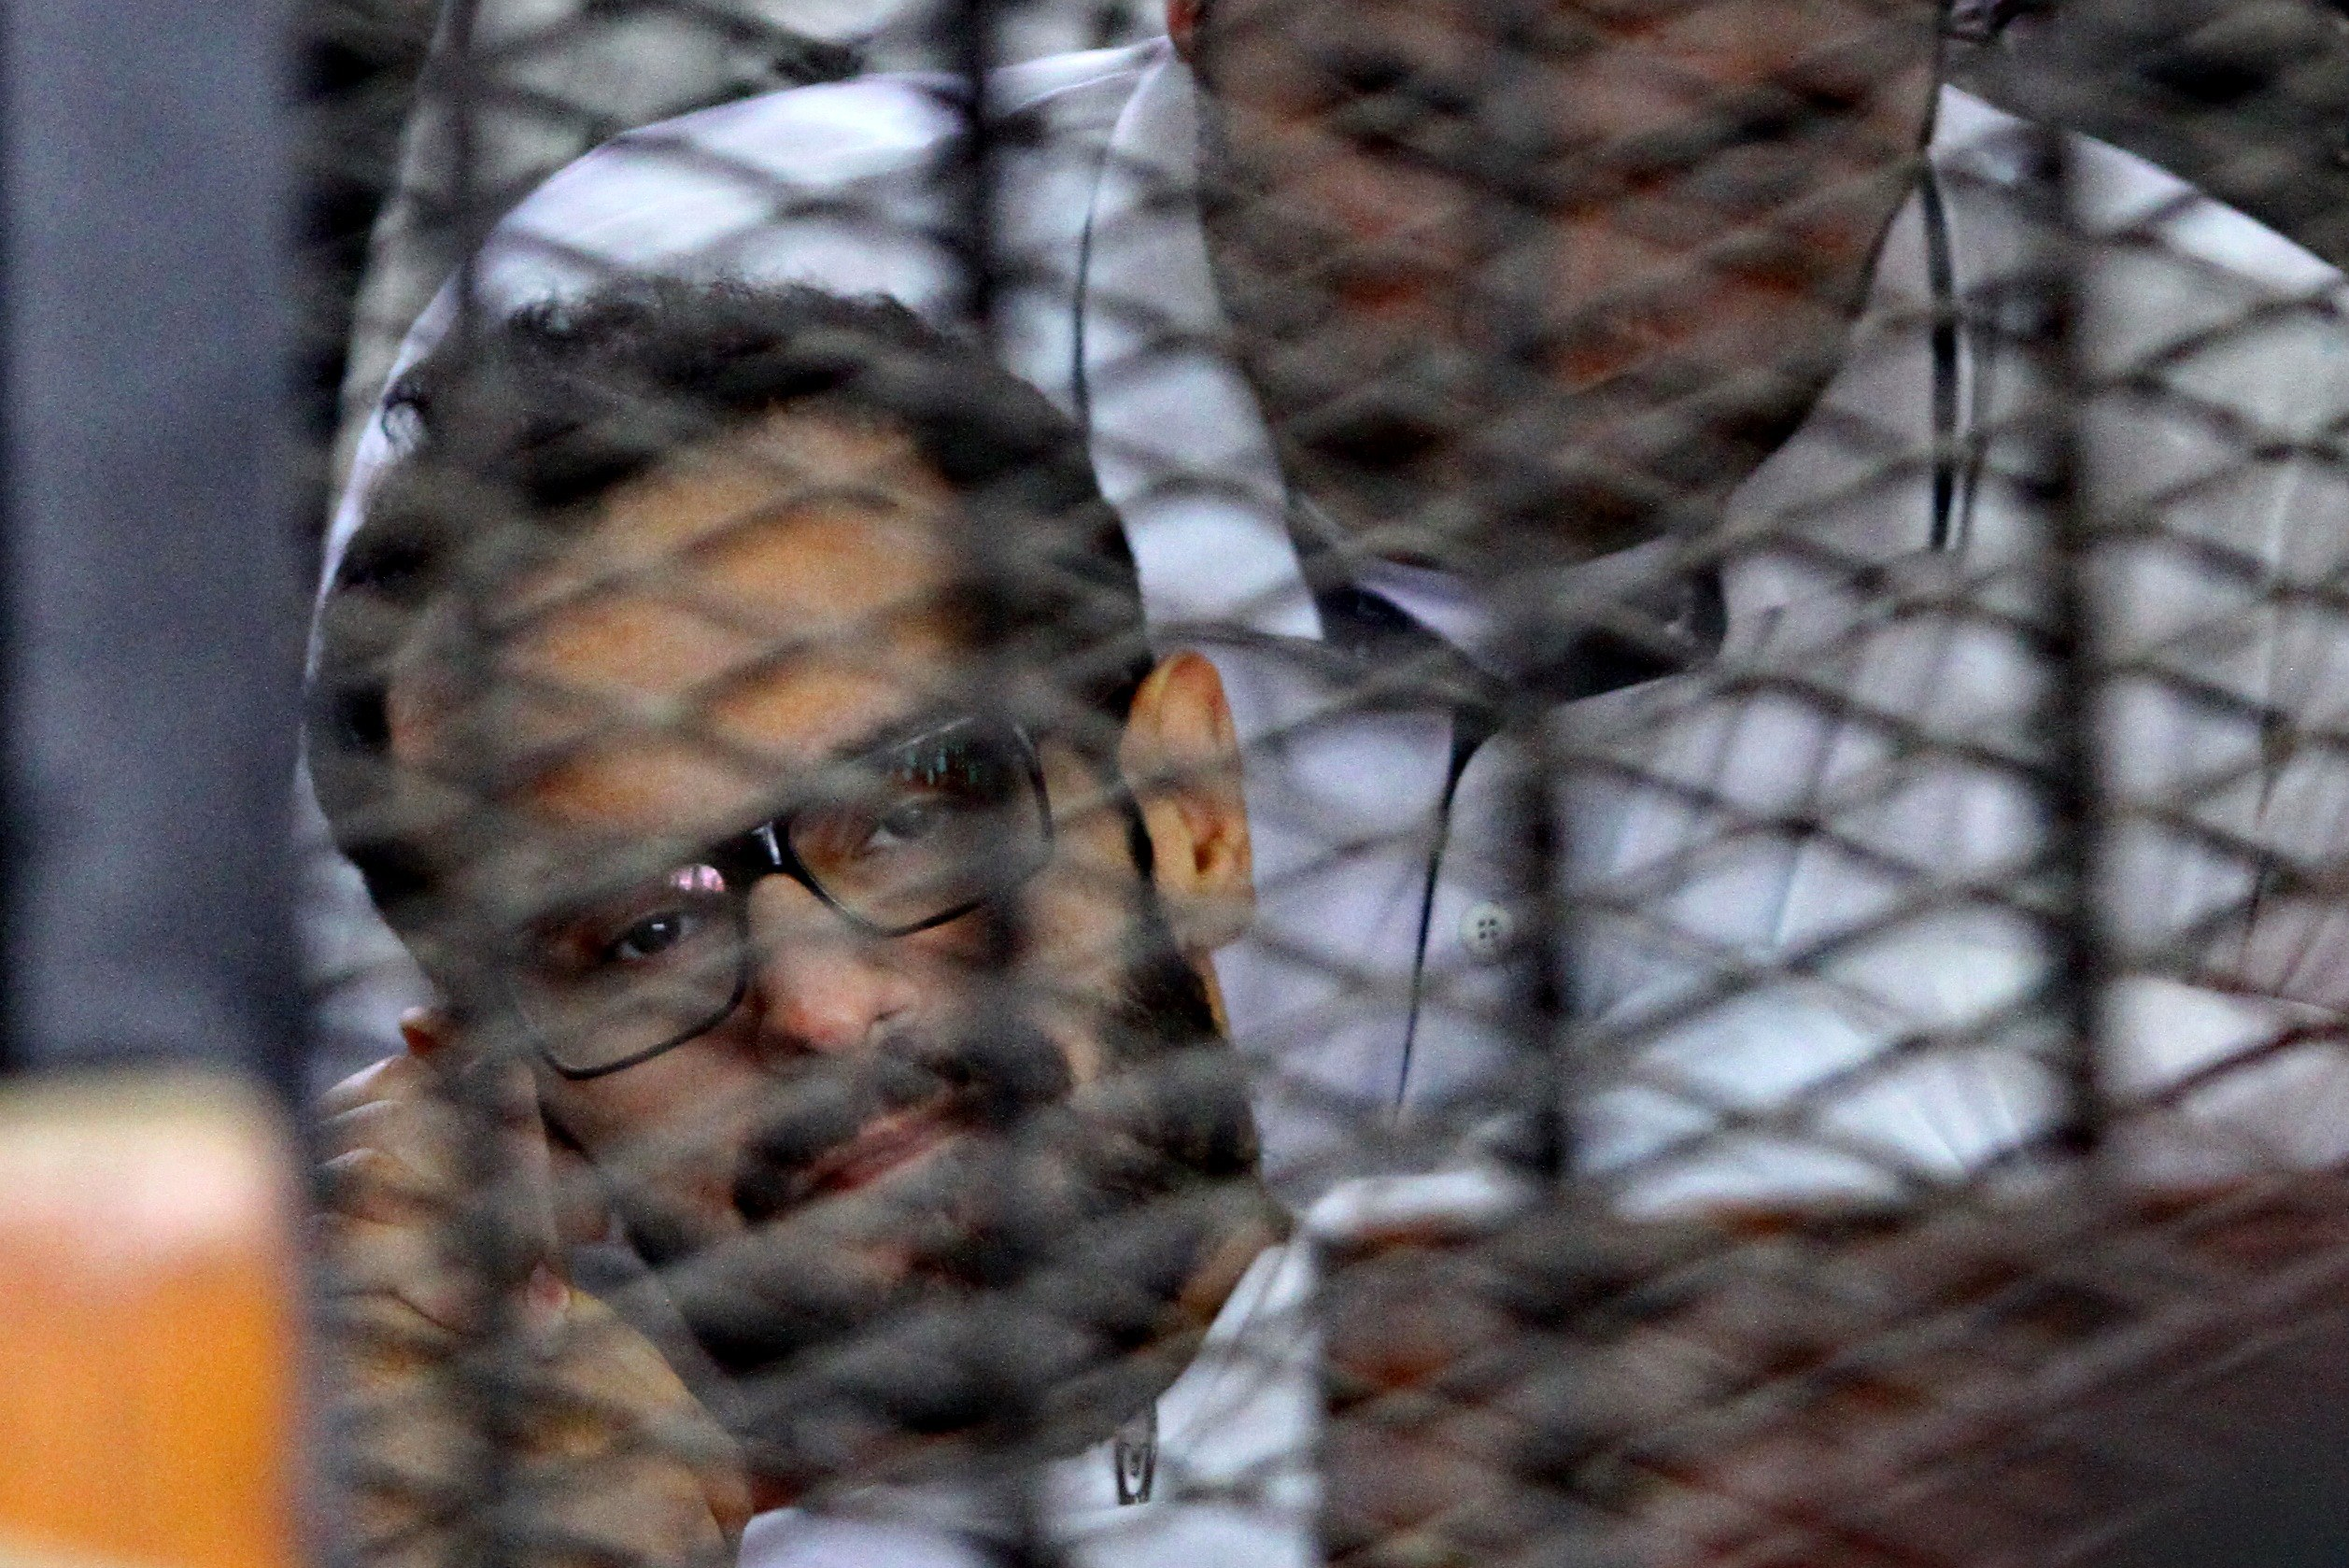 Egyptian-American activist Mohamed Soltan enters his 232th day of hunger strike with deteriorating health (AFP PHOTO / STR)